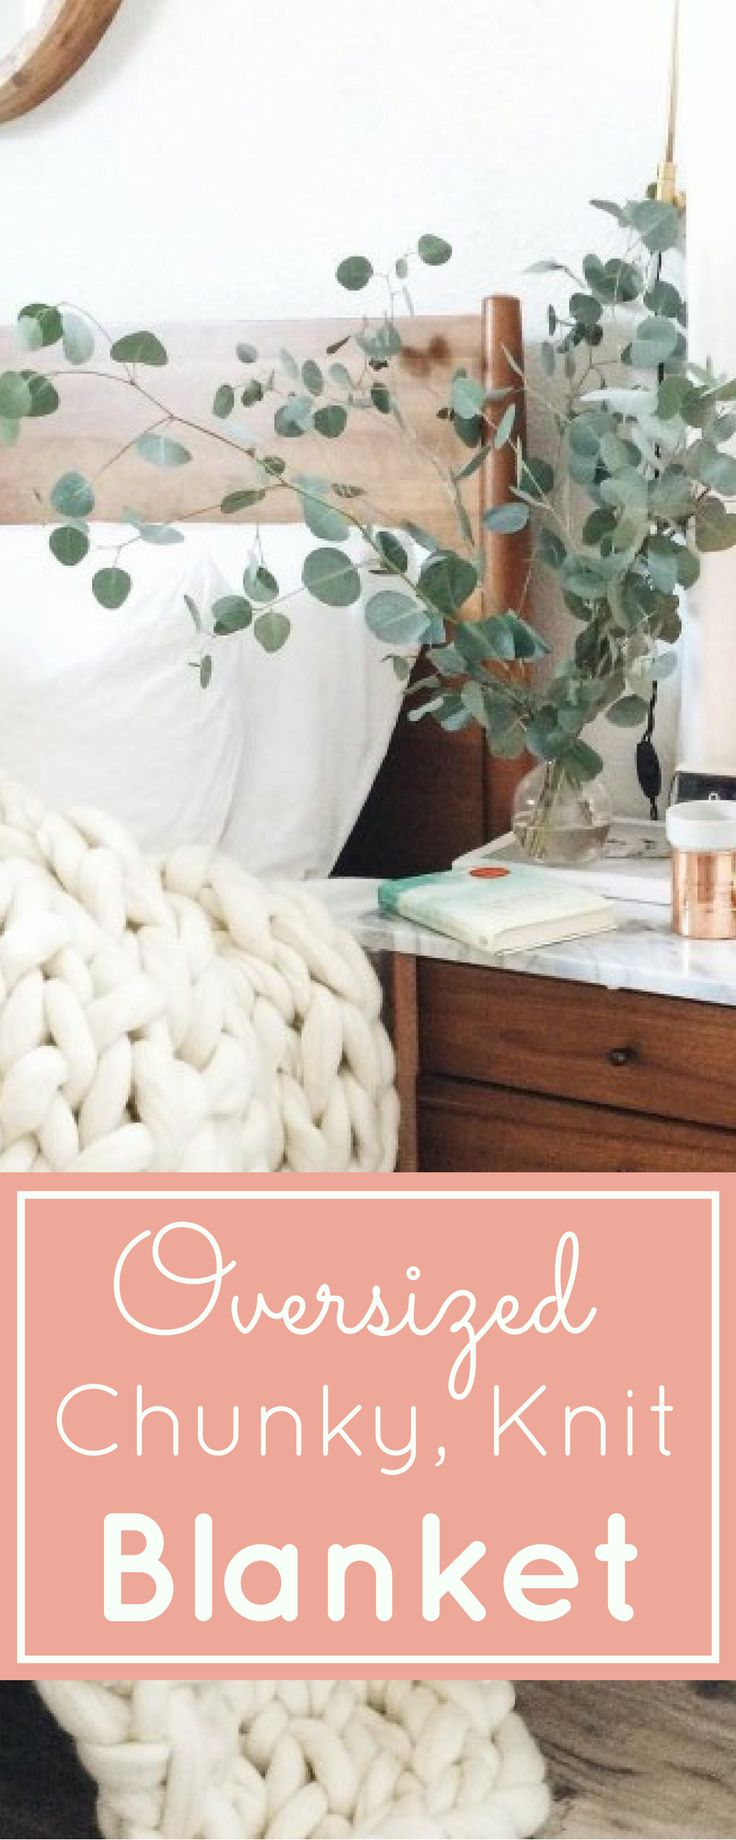 The Giant Oversized Chunky Knit Throw Blanket - Find out where to buy one (or make your own!) Click through for the details.   glitterinc.com   @glitterinc